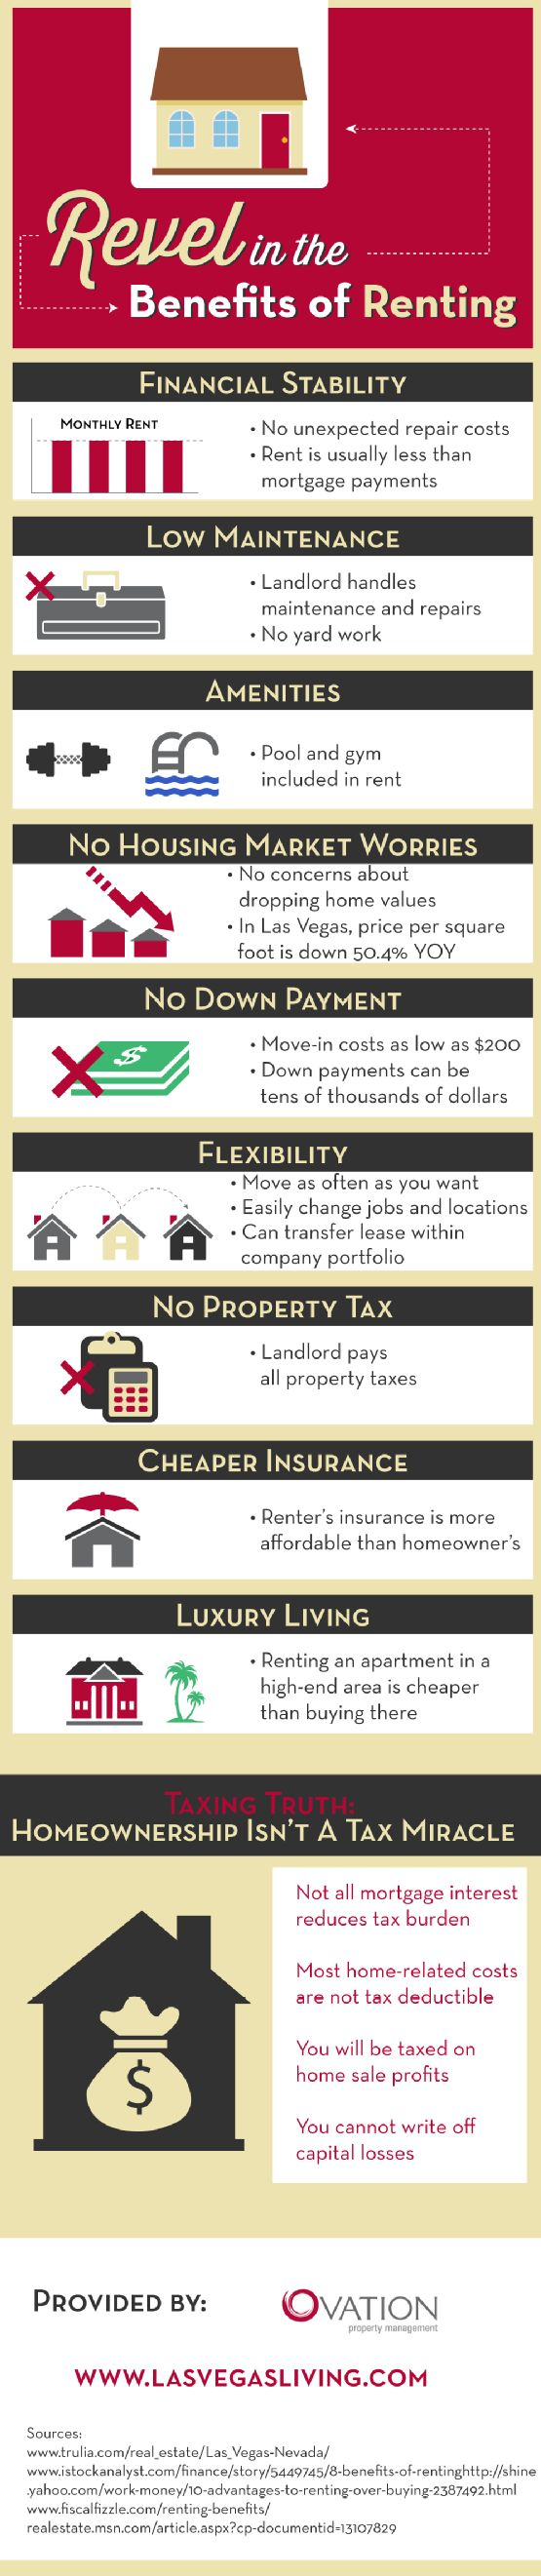 Revel In The Benefits Of Renting[INFOGRAPHIC]